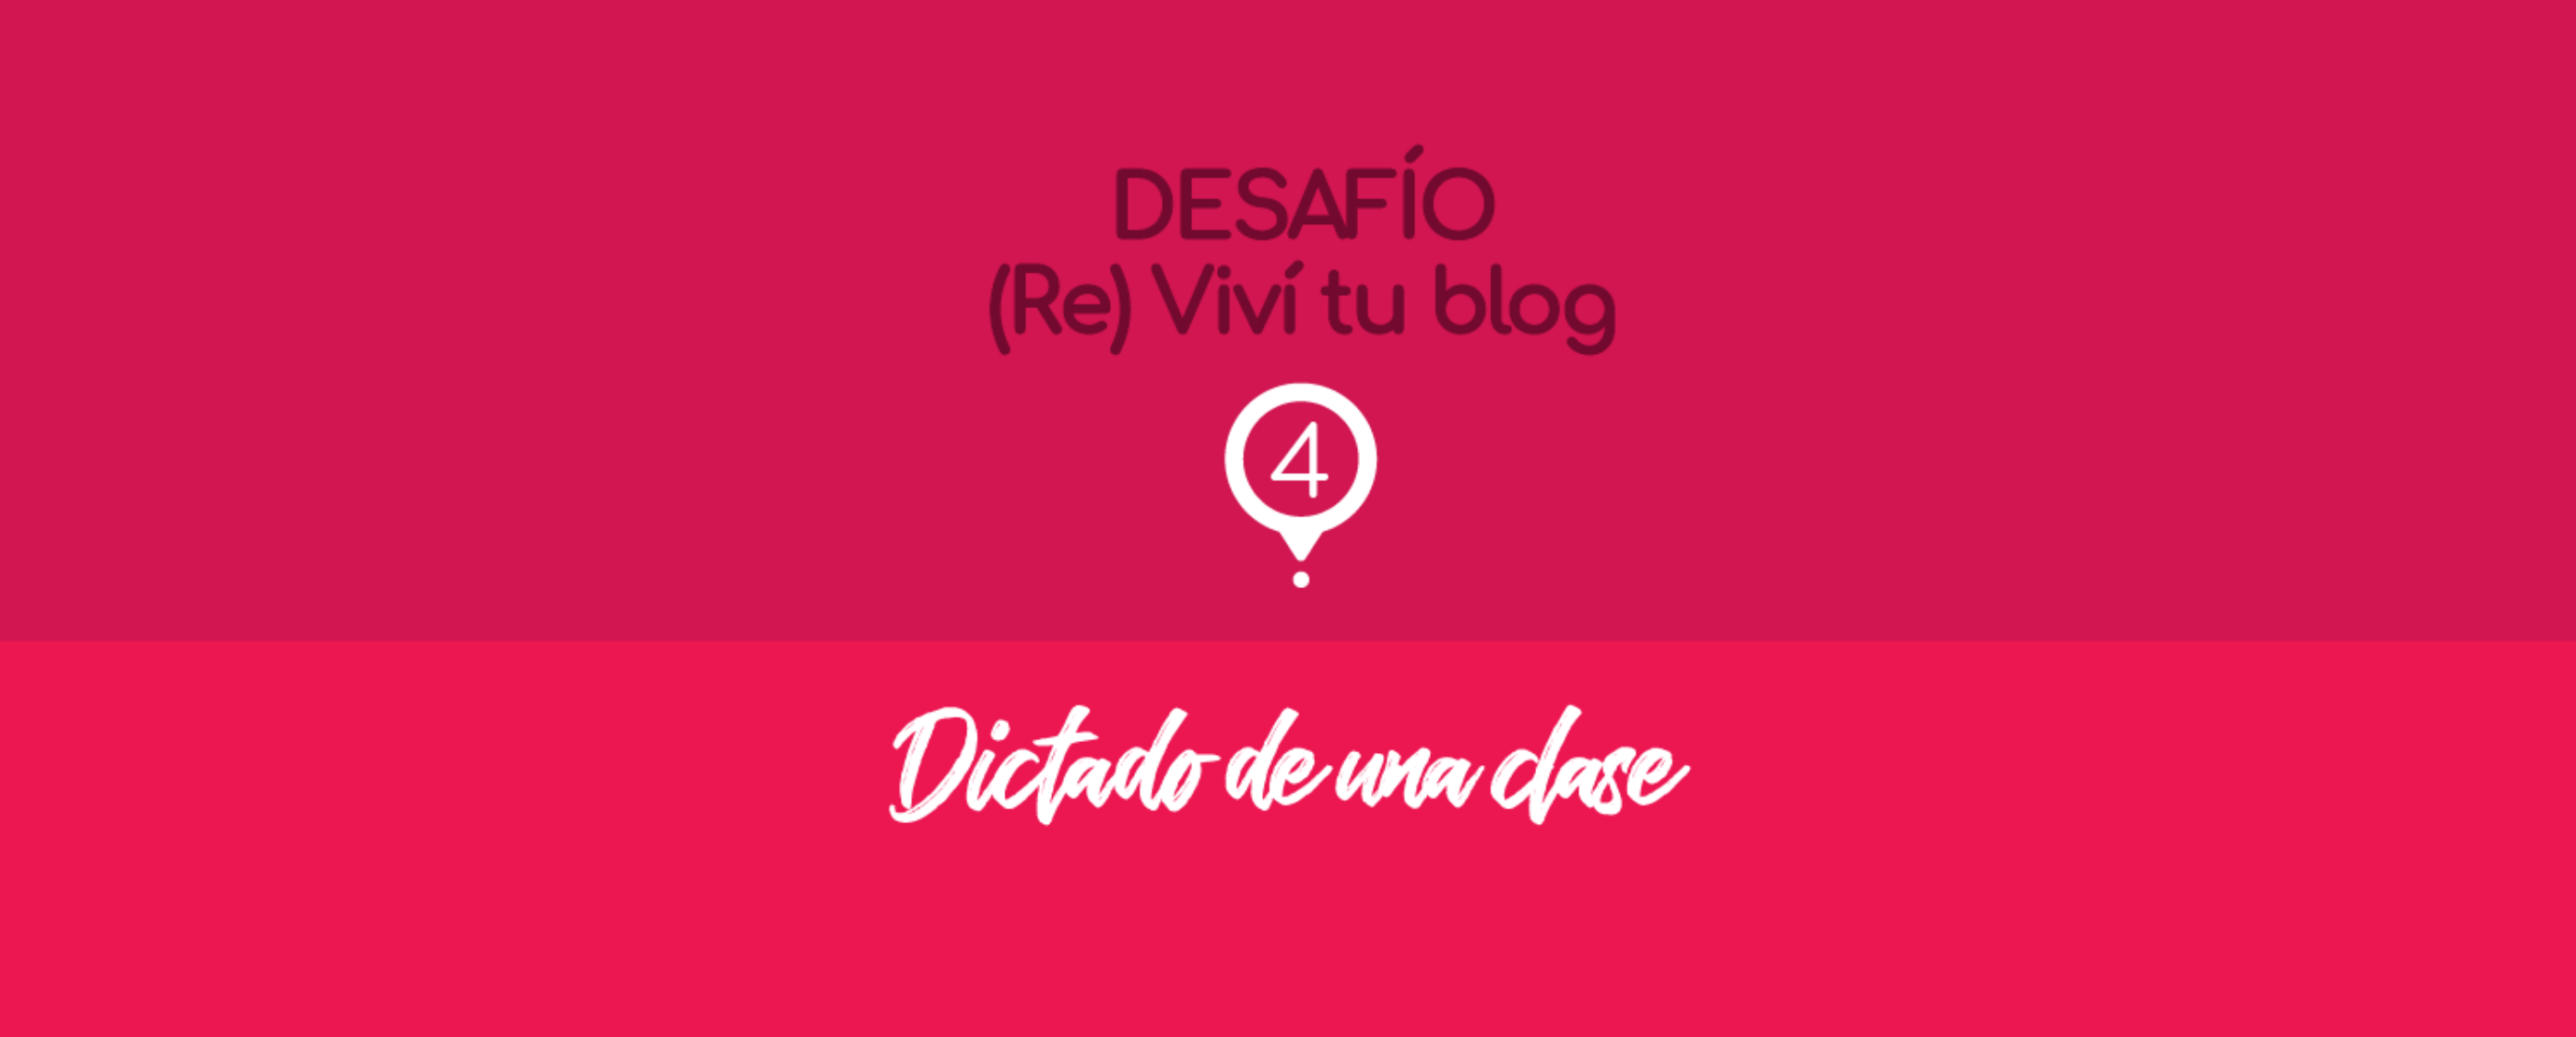 (Re) Viví tu blog: dictado de una clase